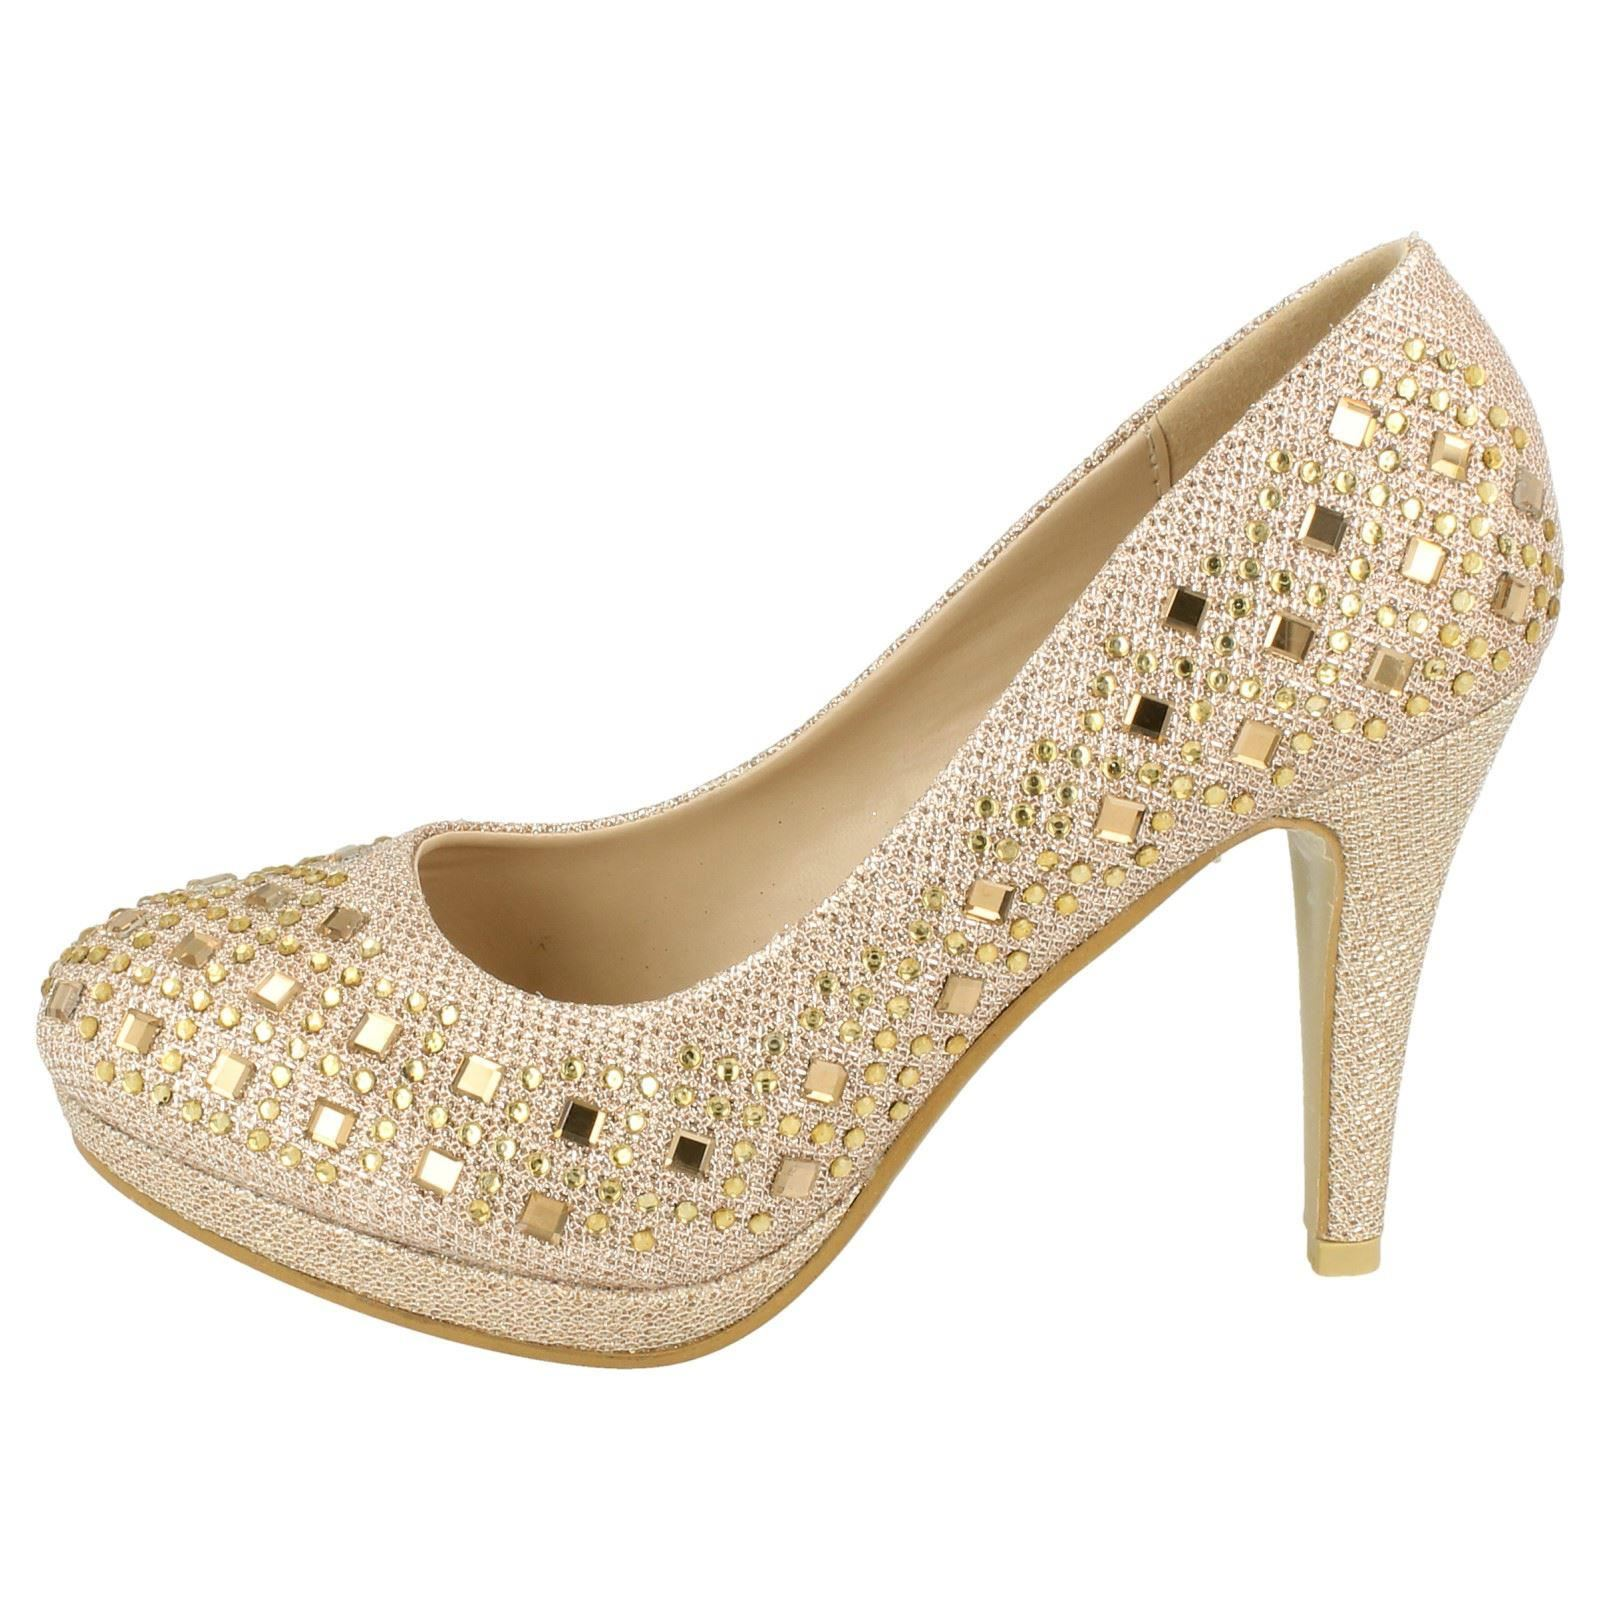 fd2231491 Ladies Jeweled Court Shoes Anne Michelle F9804 UK 7 Nude gold Textile.  About this product. Picture 1 of 10  Picture 2 of 10  Picture 3 of 10 ...